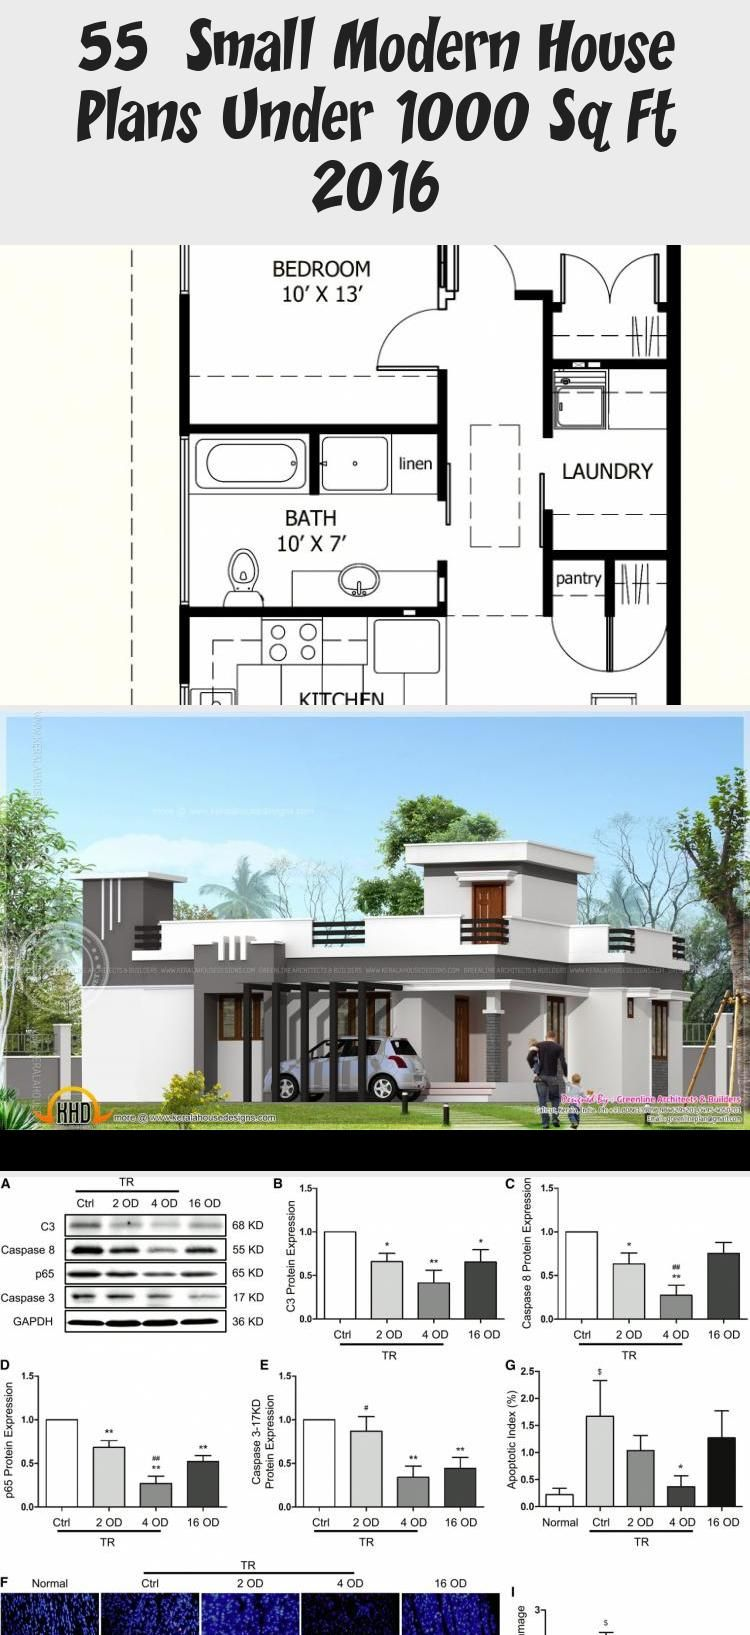 50 Small Modern House Plans Under 1000 Sq Ft 2019 Modernhousesketcharchitects Modernhousesketch Small Modern House Plans Modern House Plans Small Modern Home